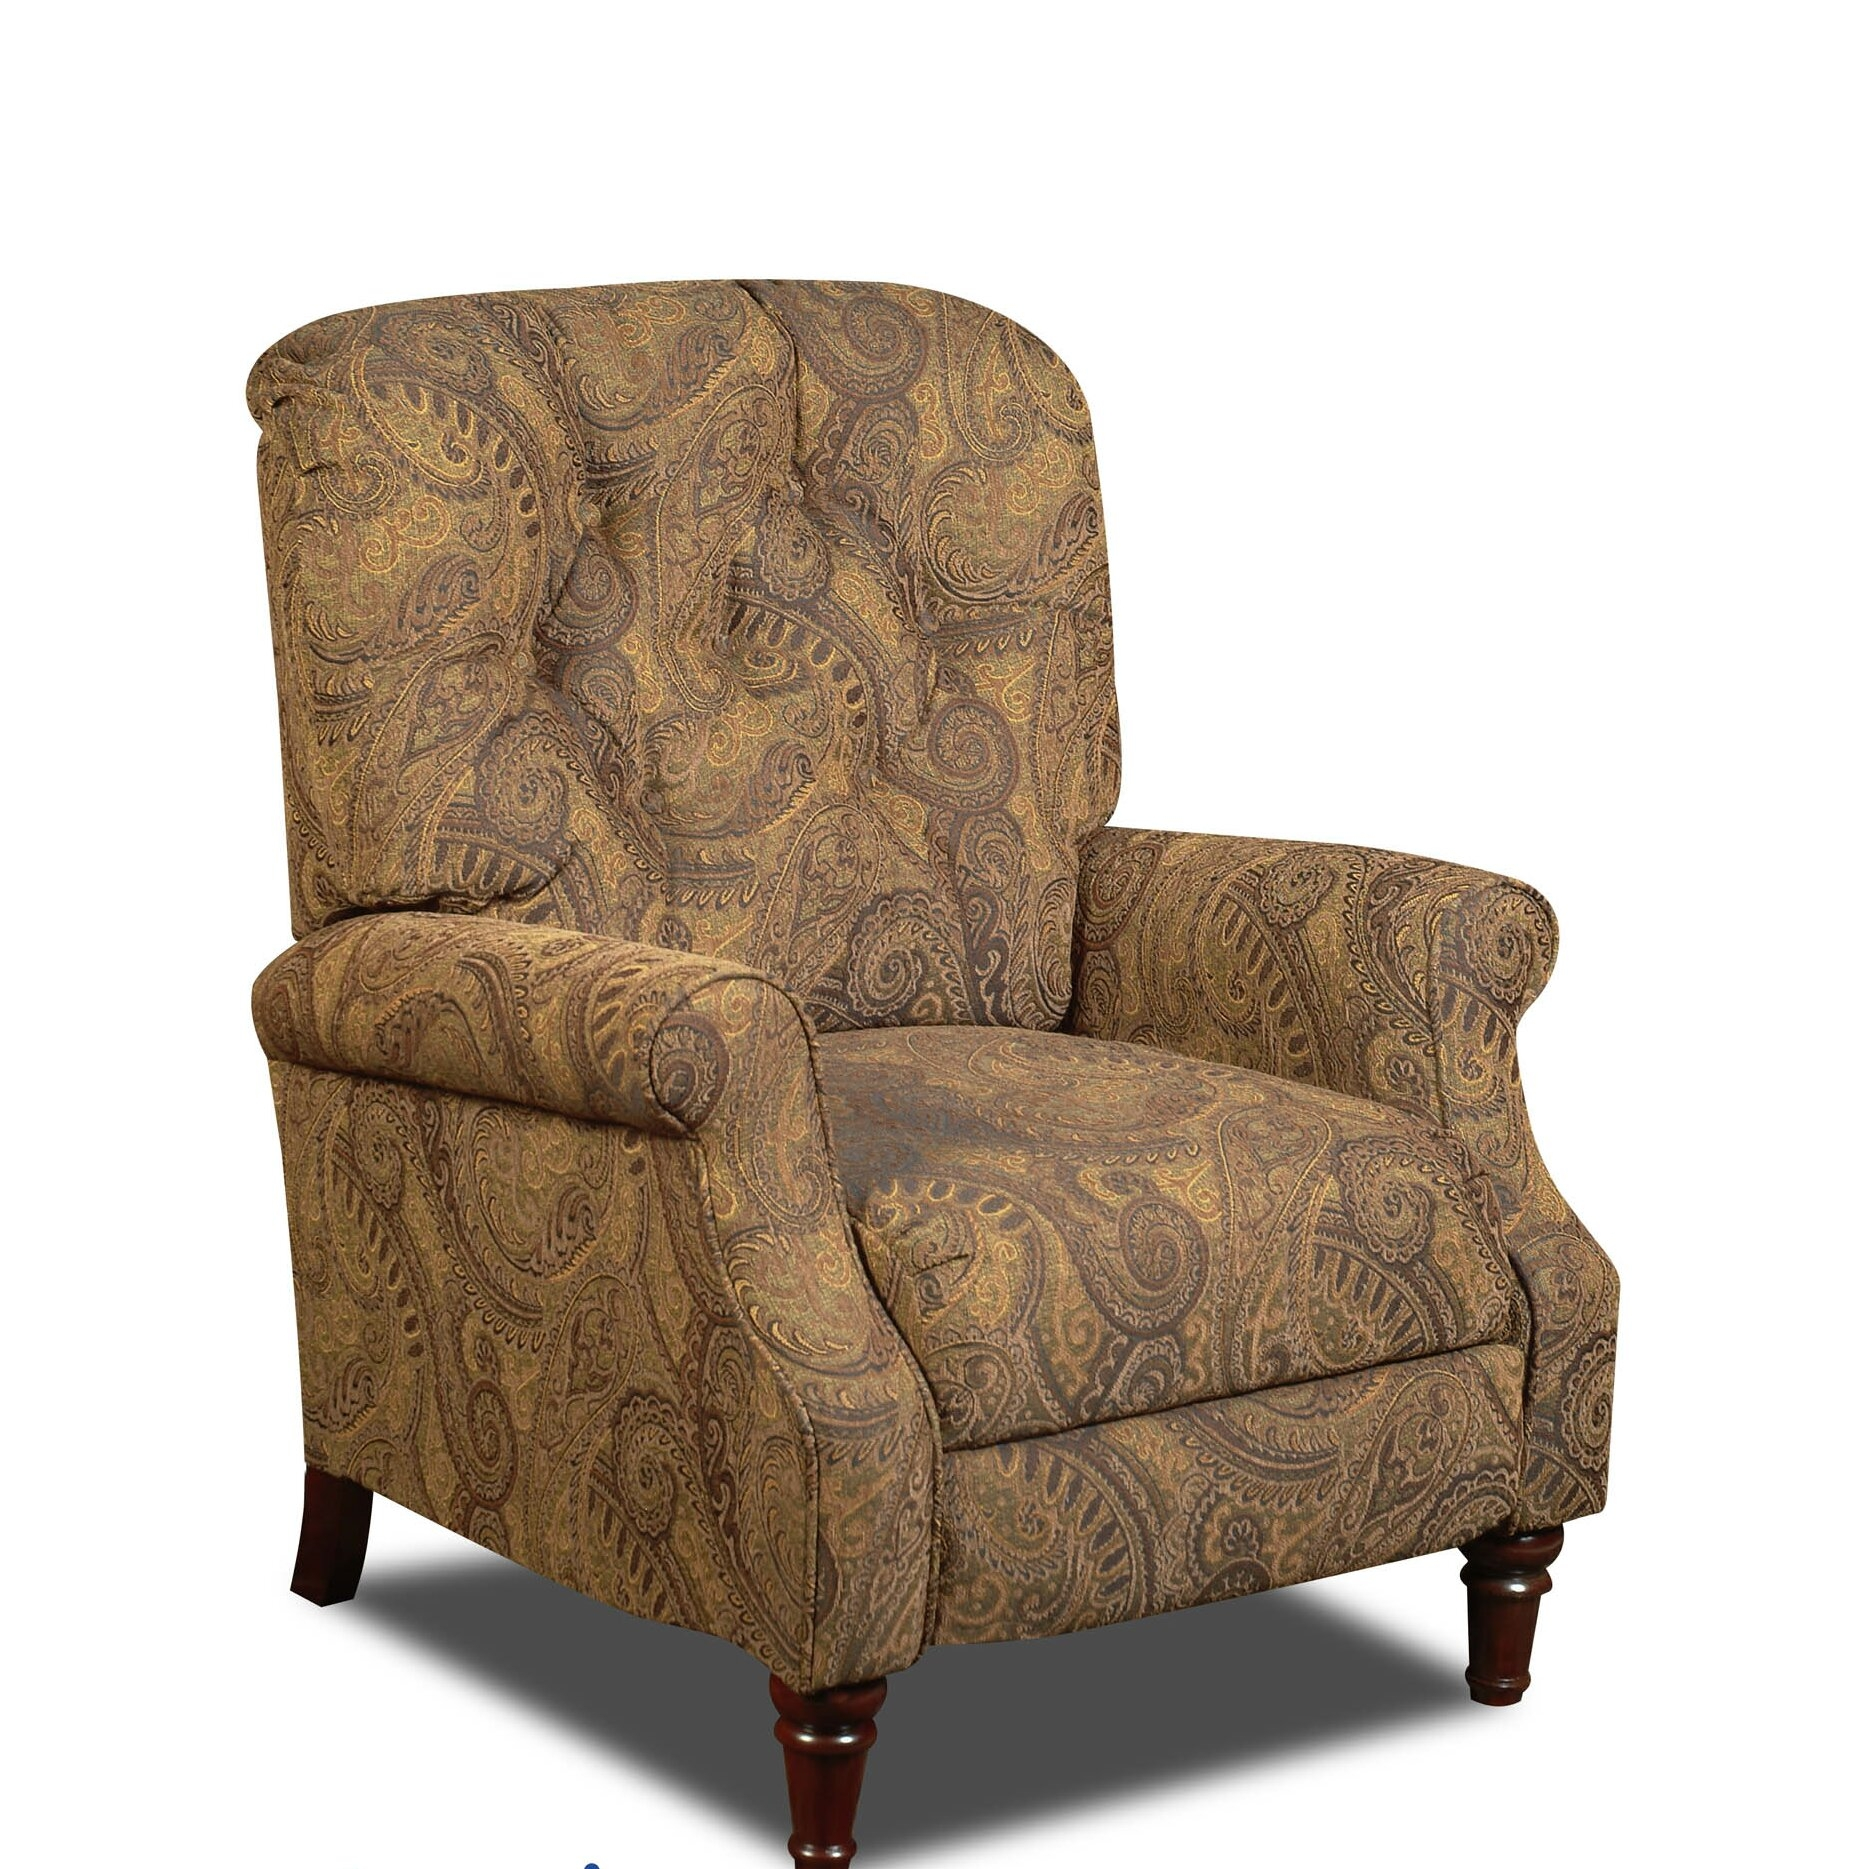 Delicieux Isle Upholstered Hi Leg Recliner Chair In Tobacco